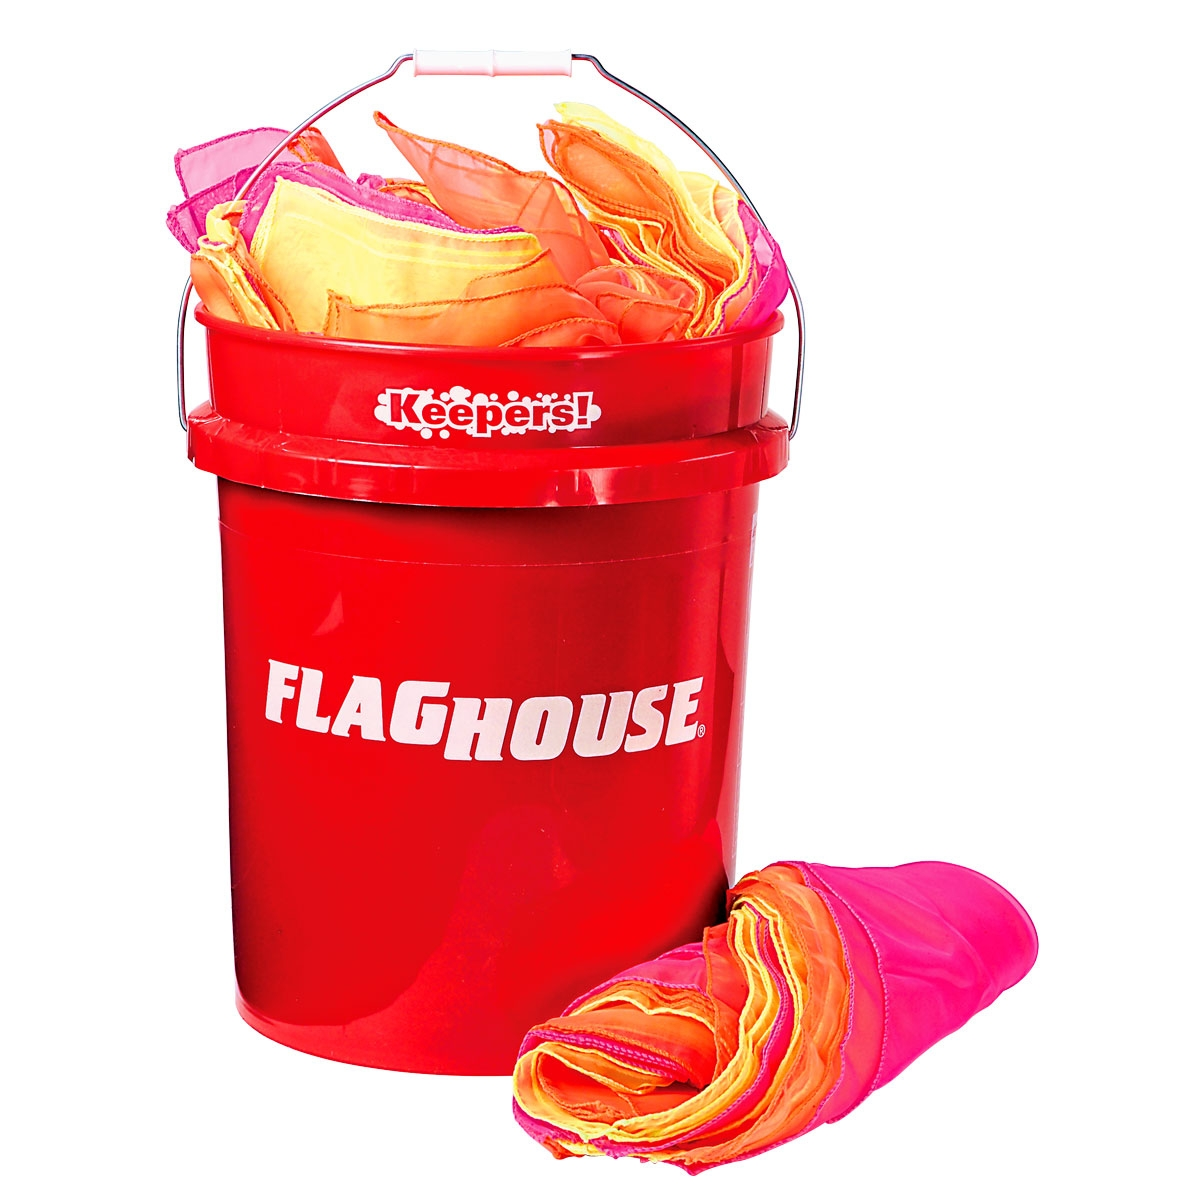 tosser scarves set for gym classes in red storage bucket | mancino mats